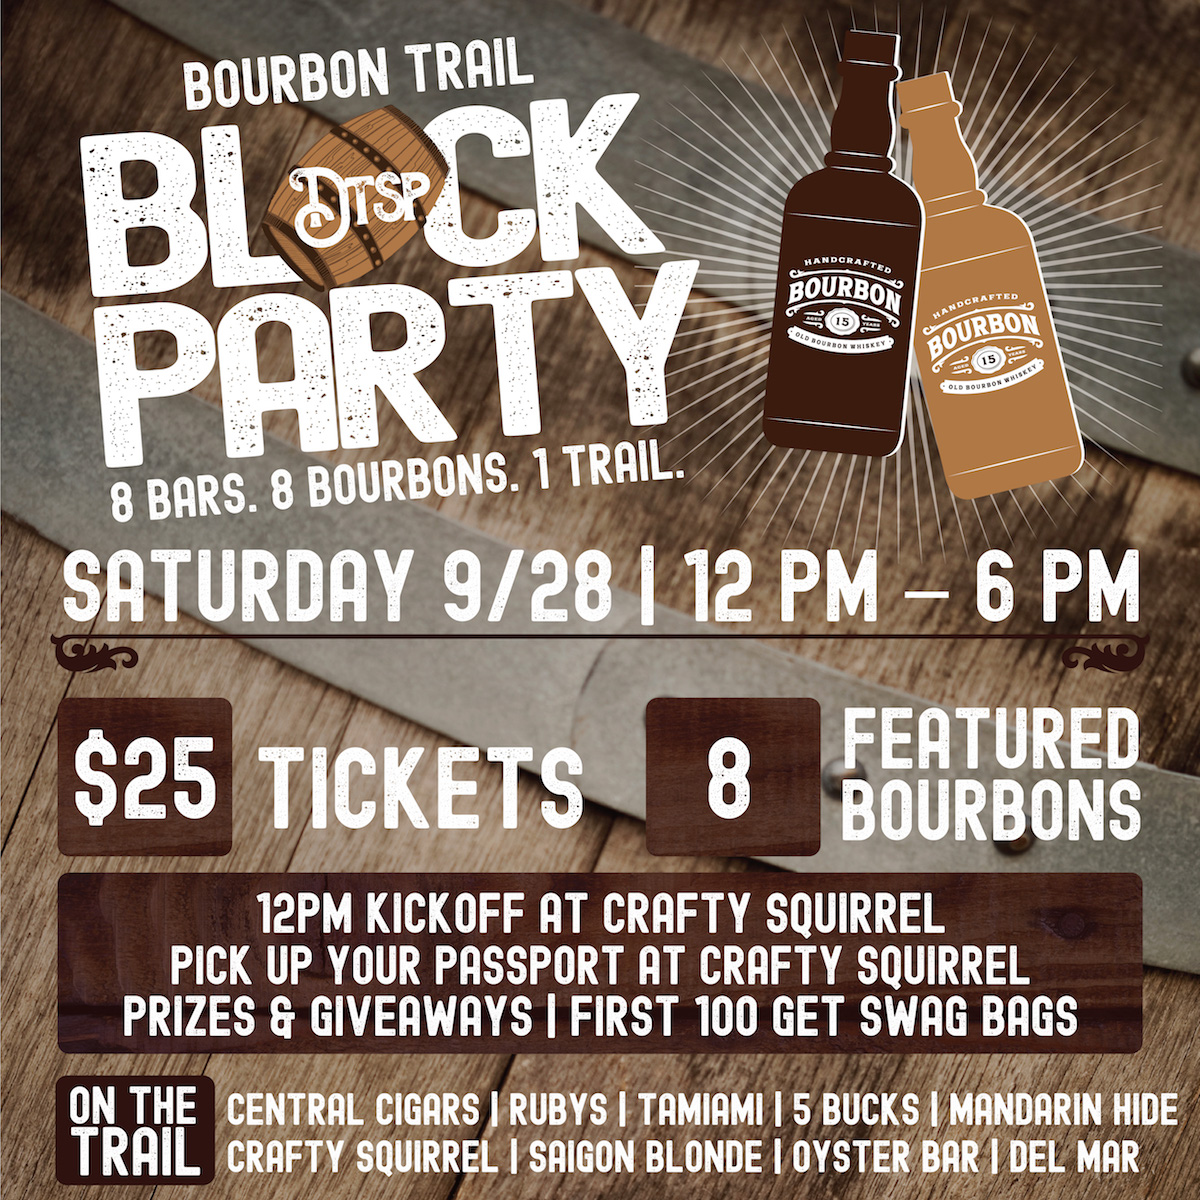 Calling All Bourbon Lovers for a Downtown St. Pete Bourbon Trail Block Party